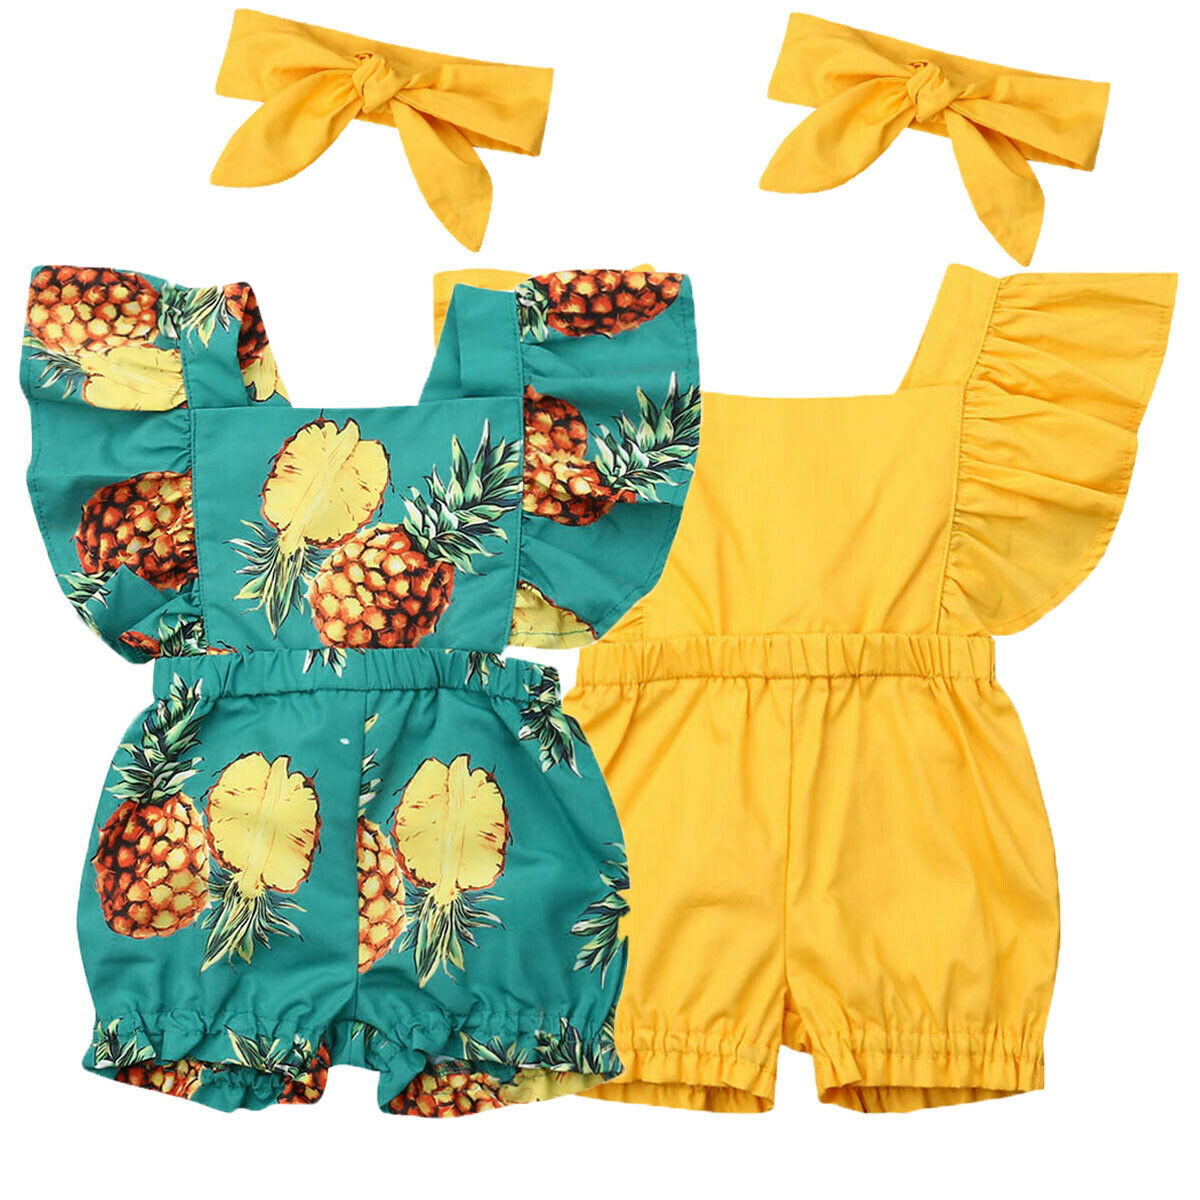 Baby Girl Clothes | Newborn Baby Girl Clothes Fly Sleeve Ruffle Romper Jumpsuit Headband 2PCS Outfits Set